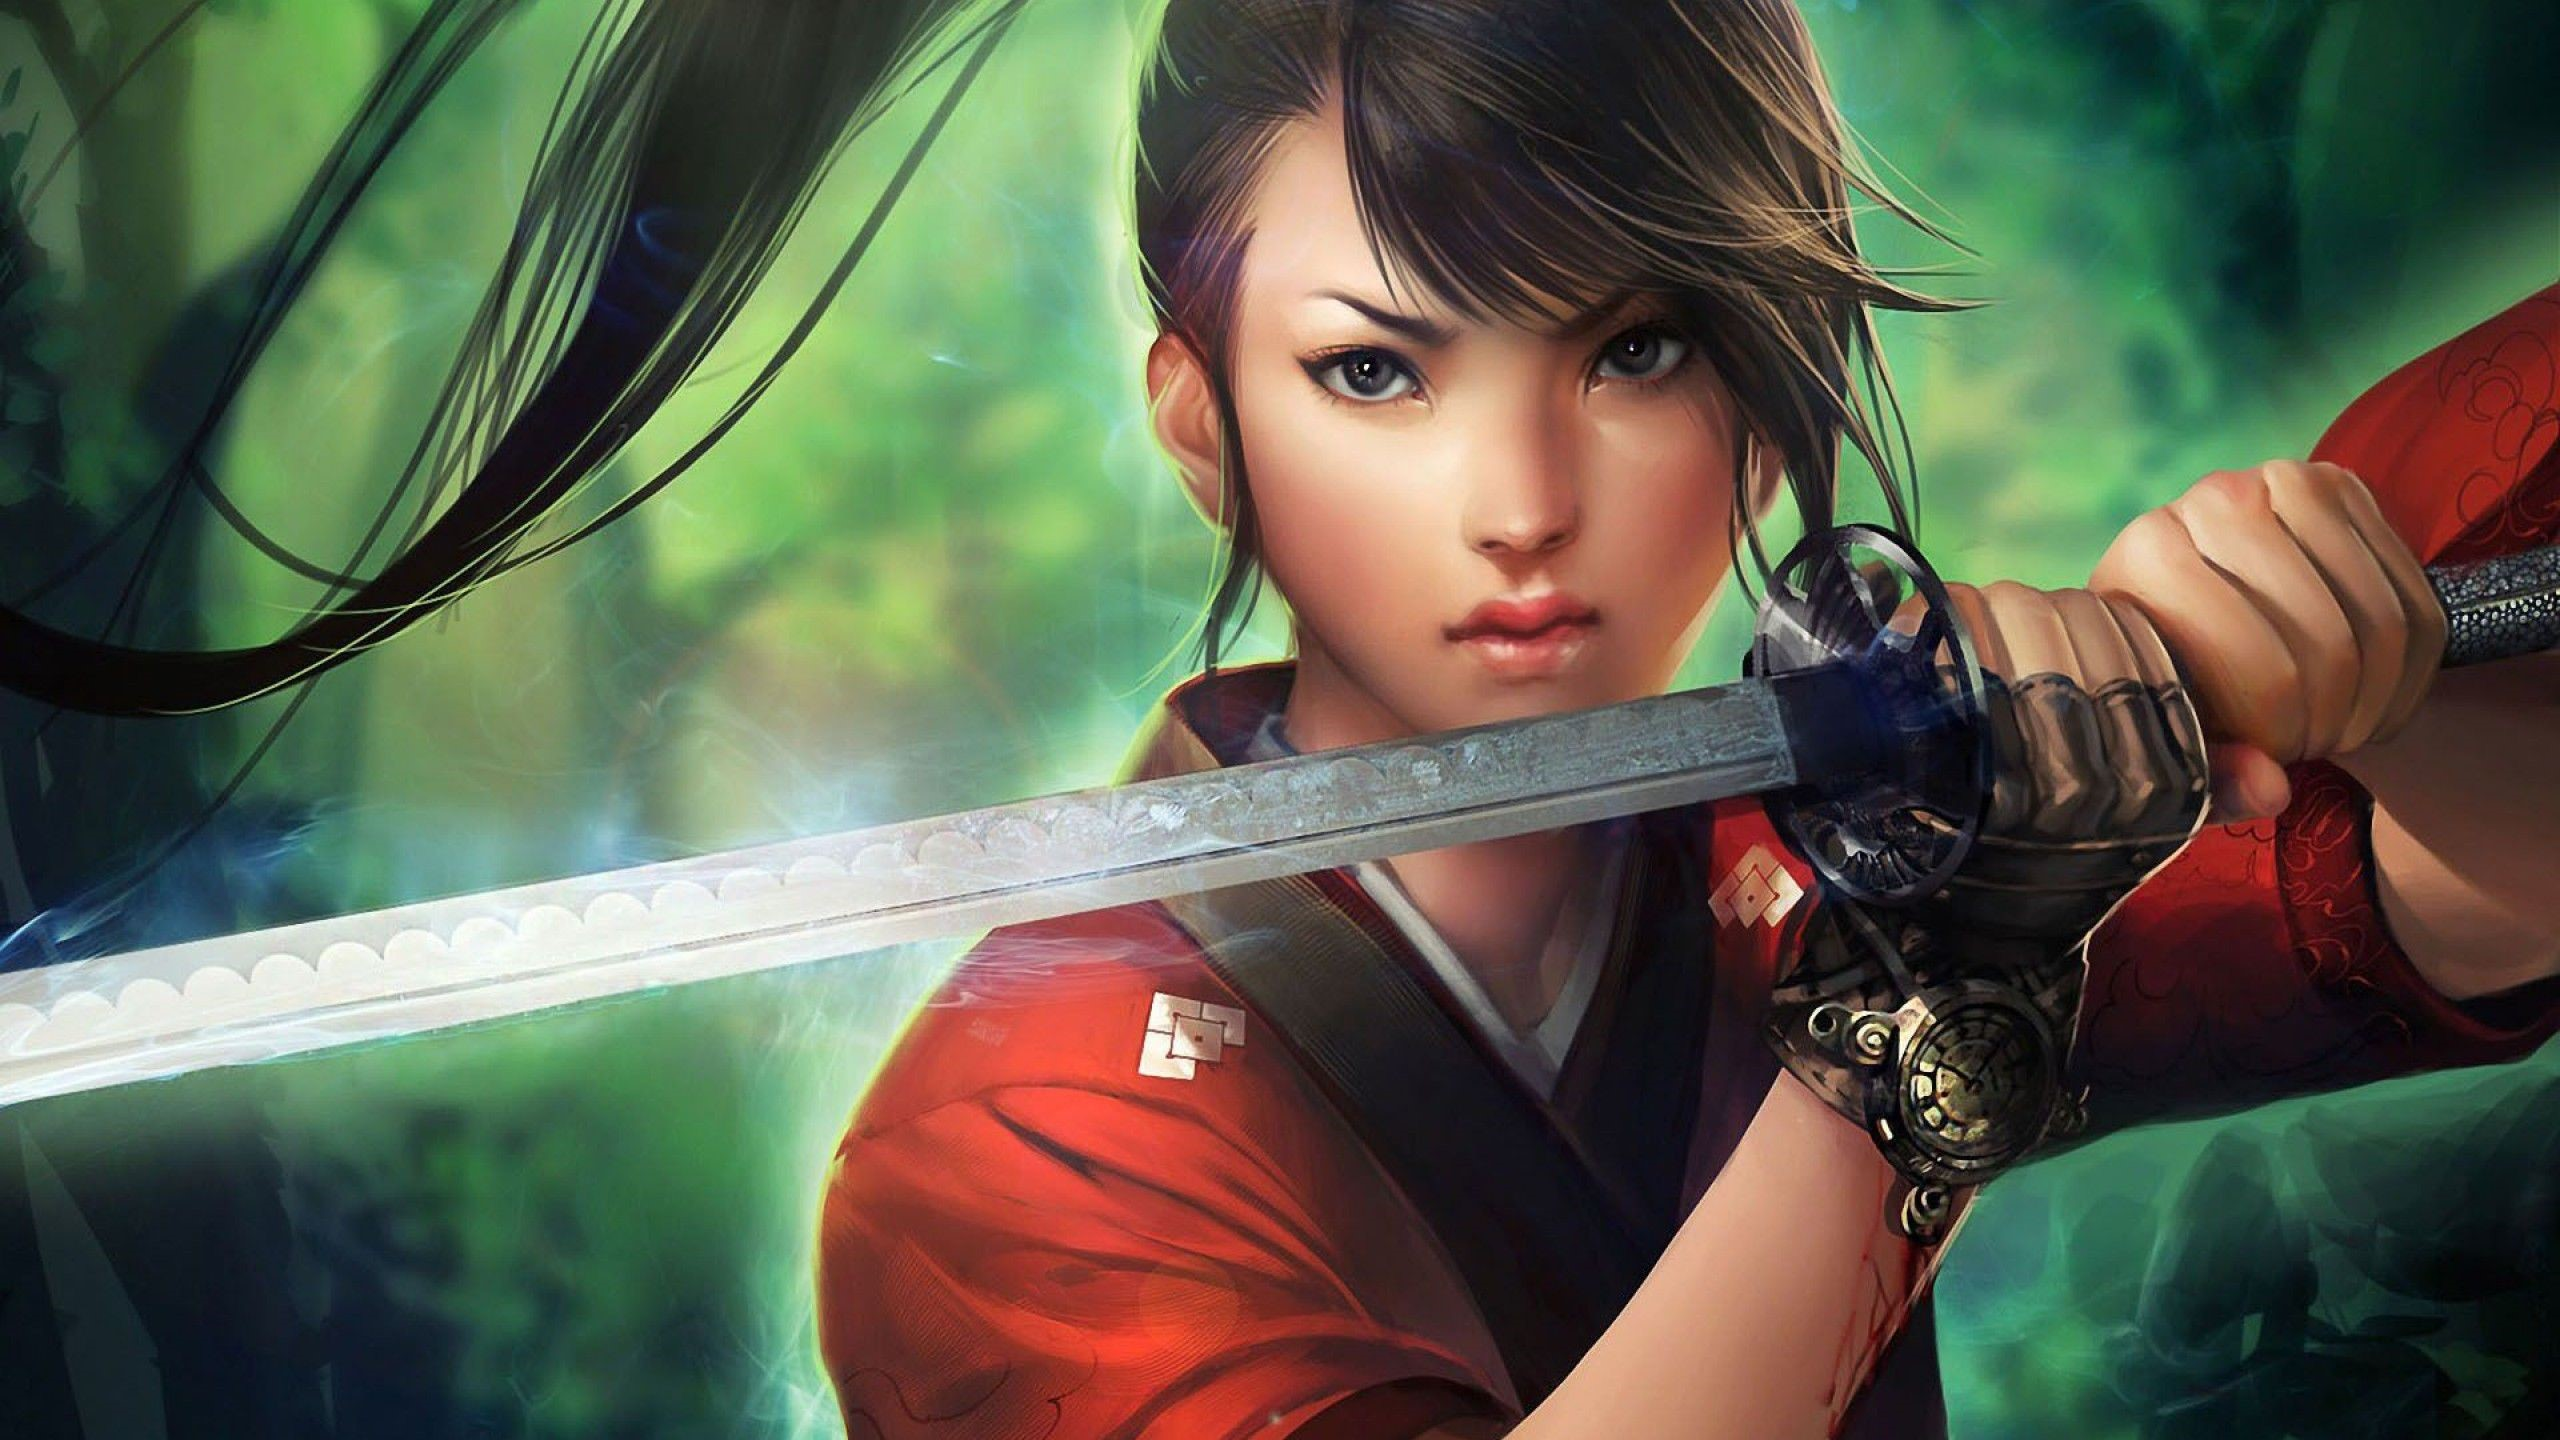 Japanese Samurai Girl 1080p Wallpapers